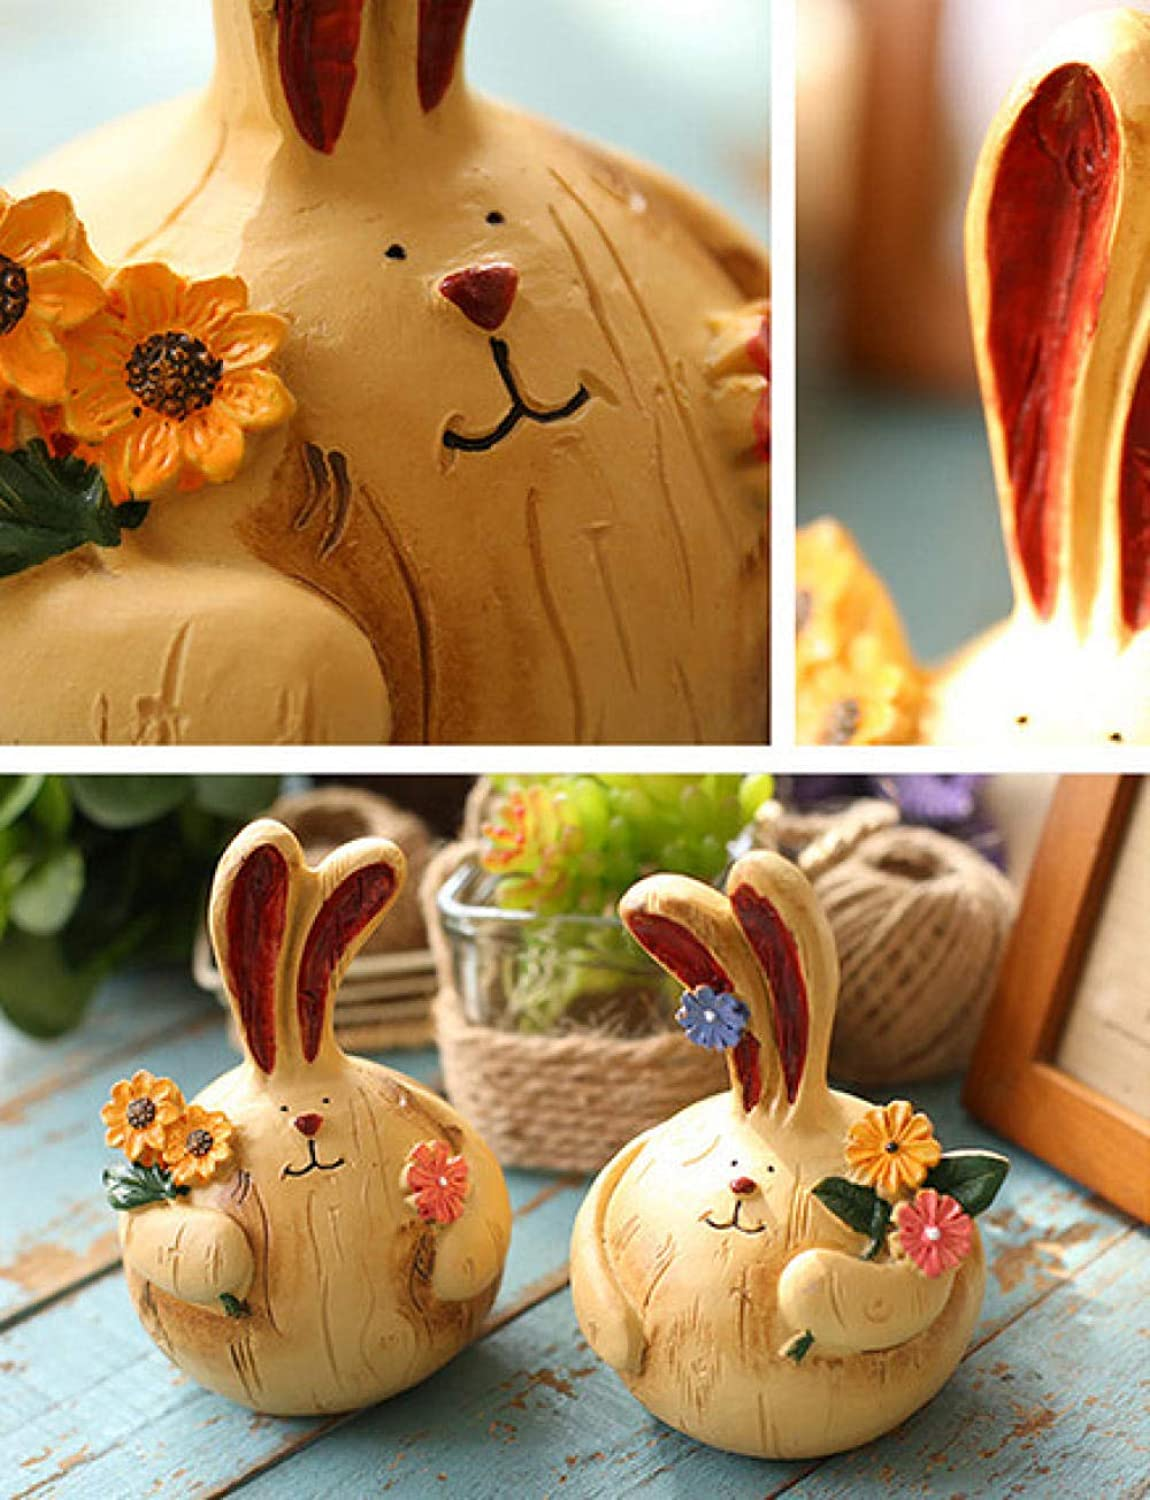 Decoracion Ceramicacreative Dressing Table Rabbit Decoration Decorations Home Bedroom Small Furnishings Dormitory Room Home Personality Girl Heart